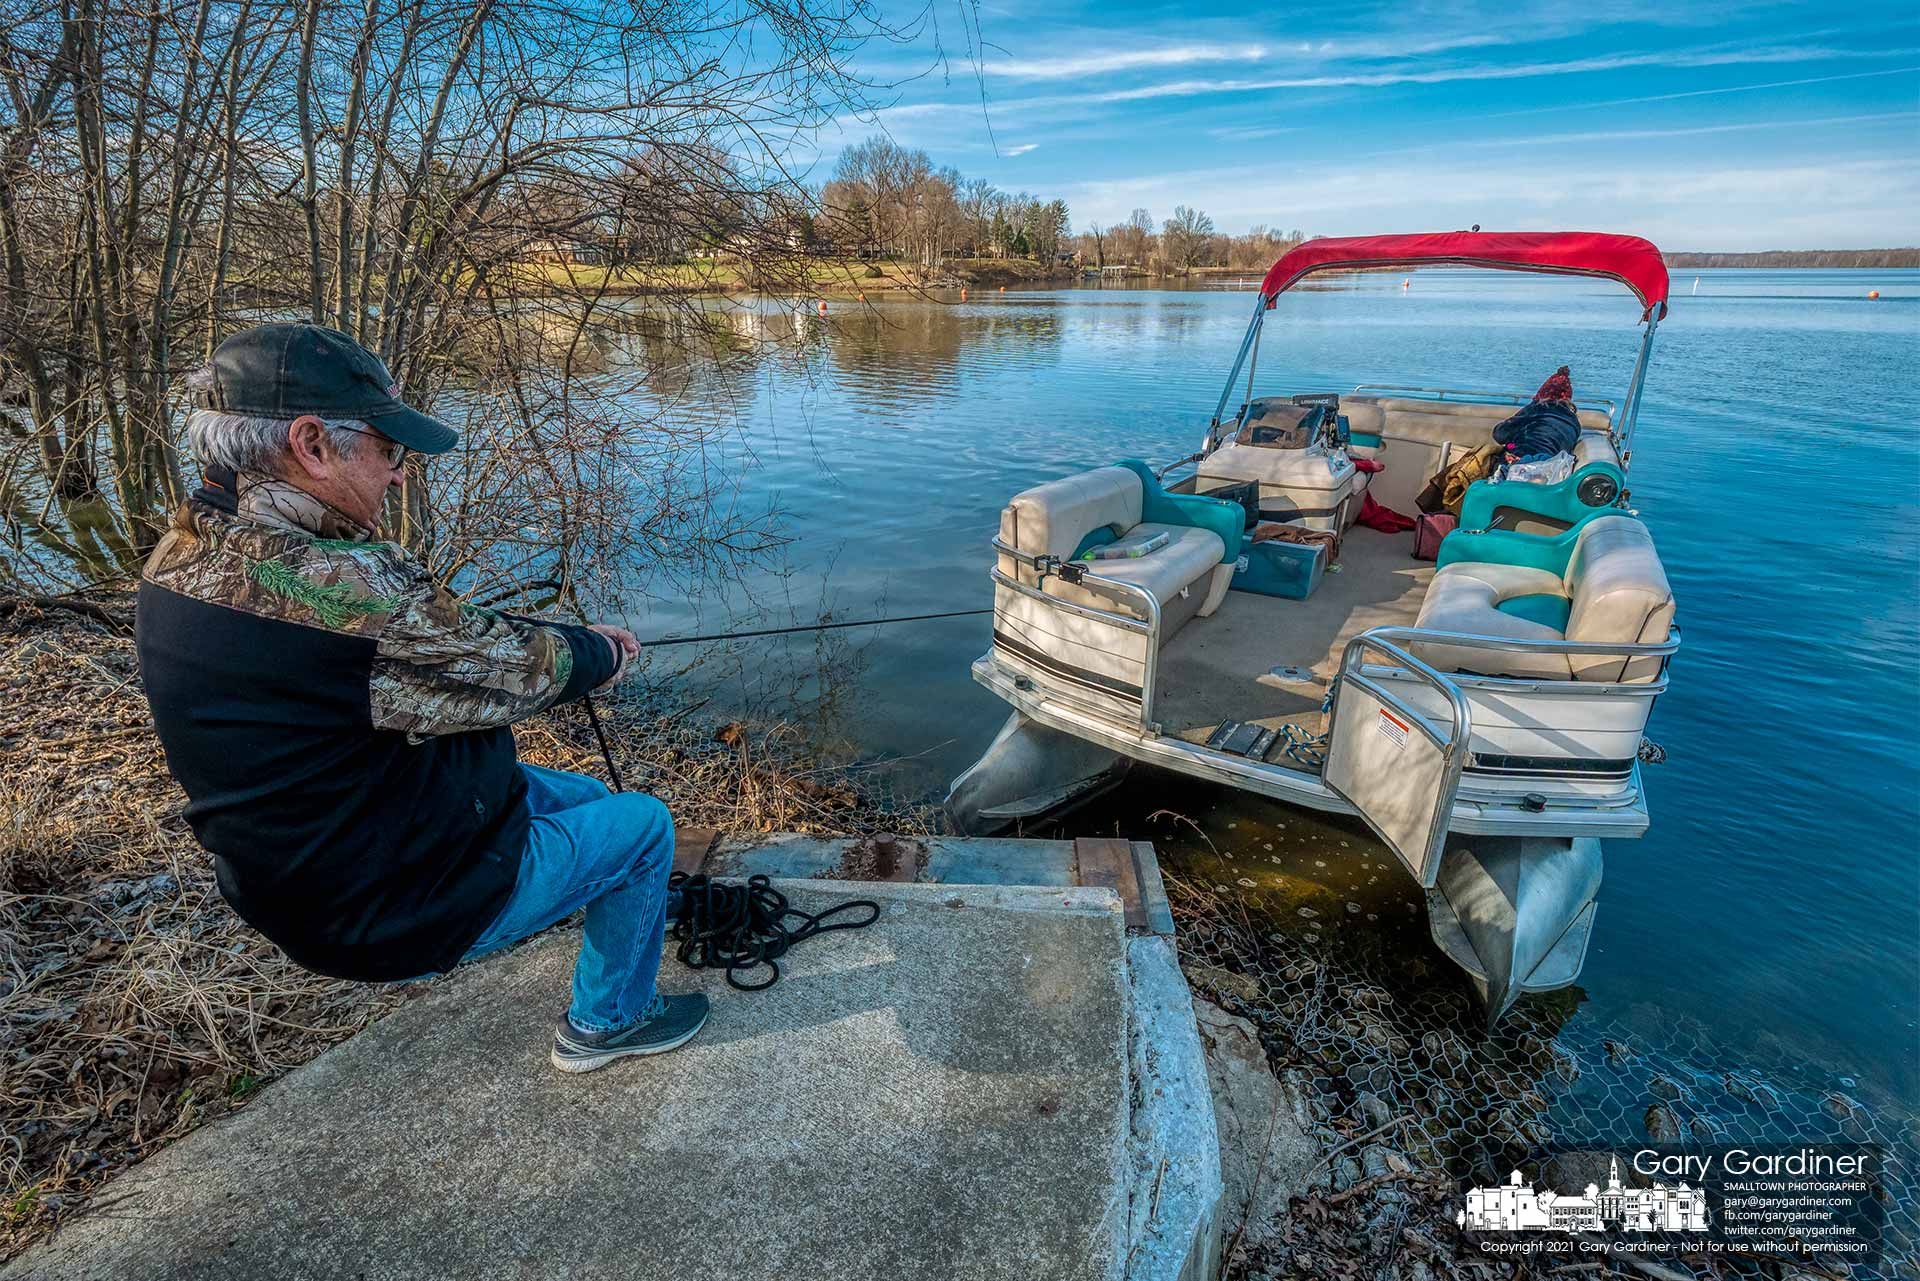 A boater pulls his pontoon boat close to shore for a temporary mooring for passenger offload after completing a test run putting hours on a new motor for the craft. My Final Photo for March 13, 2021.